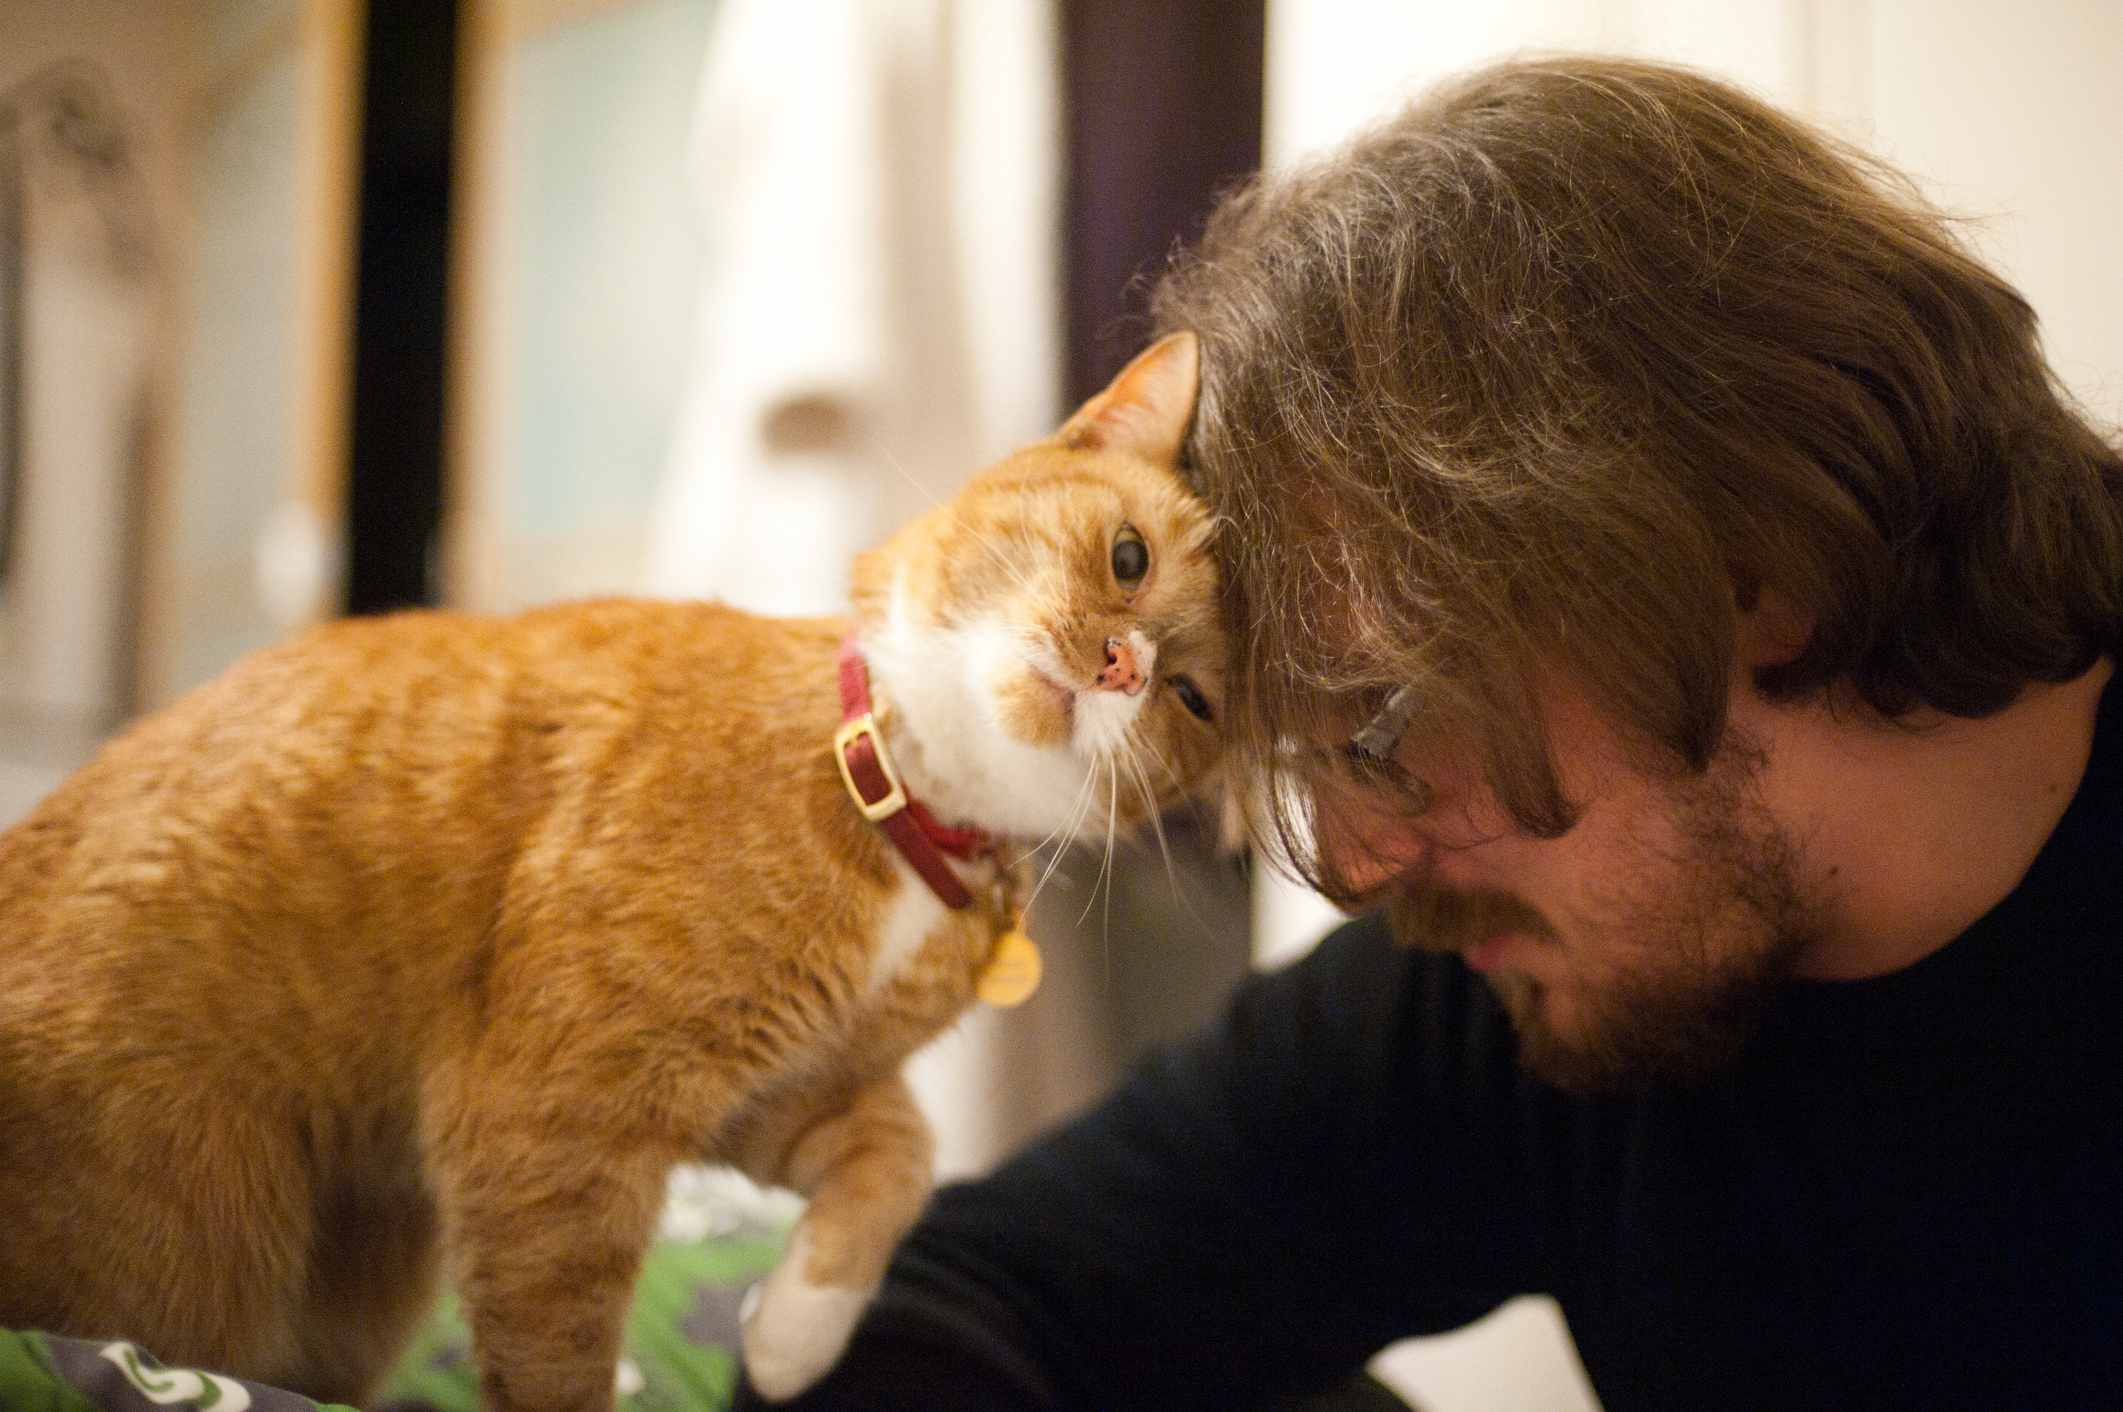 Orange and white cat head butting a man